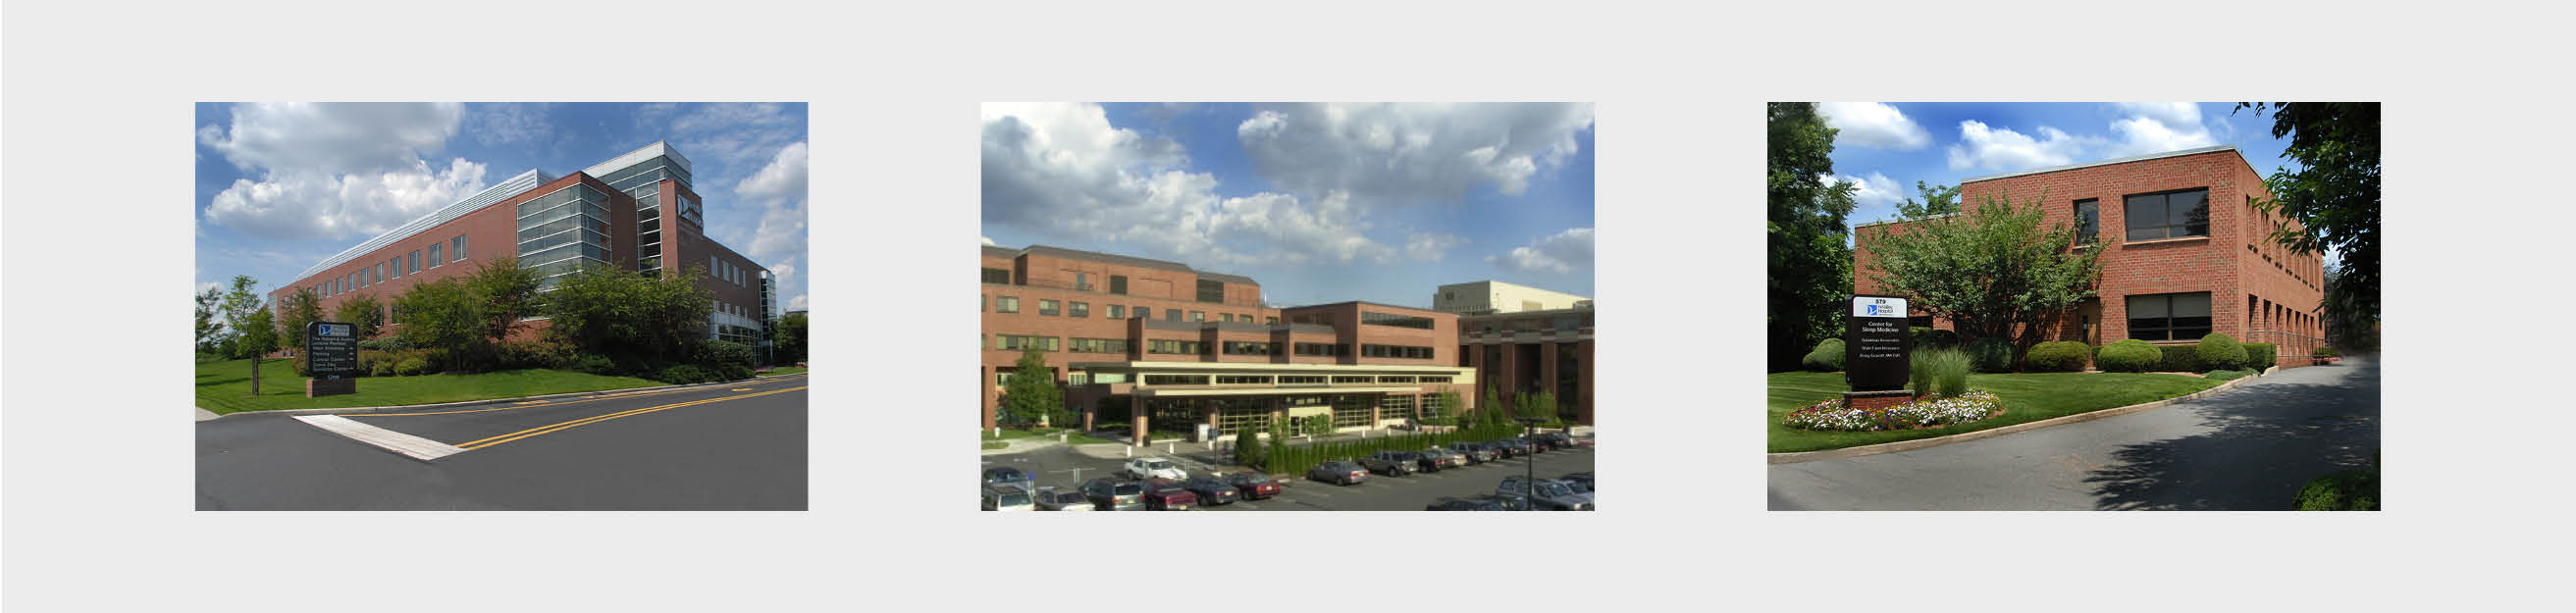 The Valley Hospital images